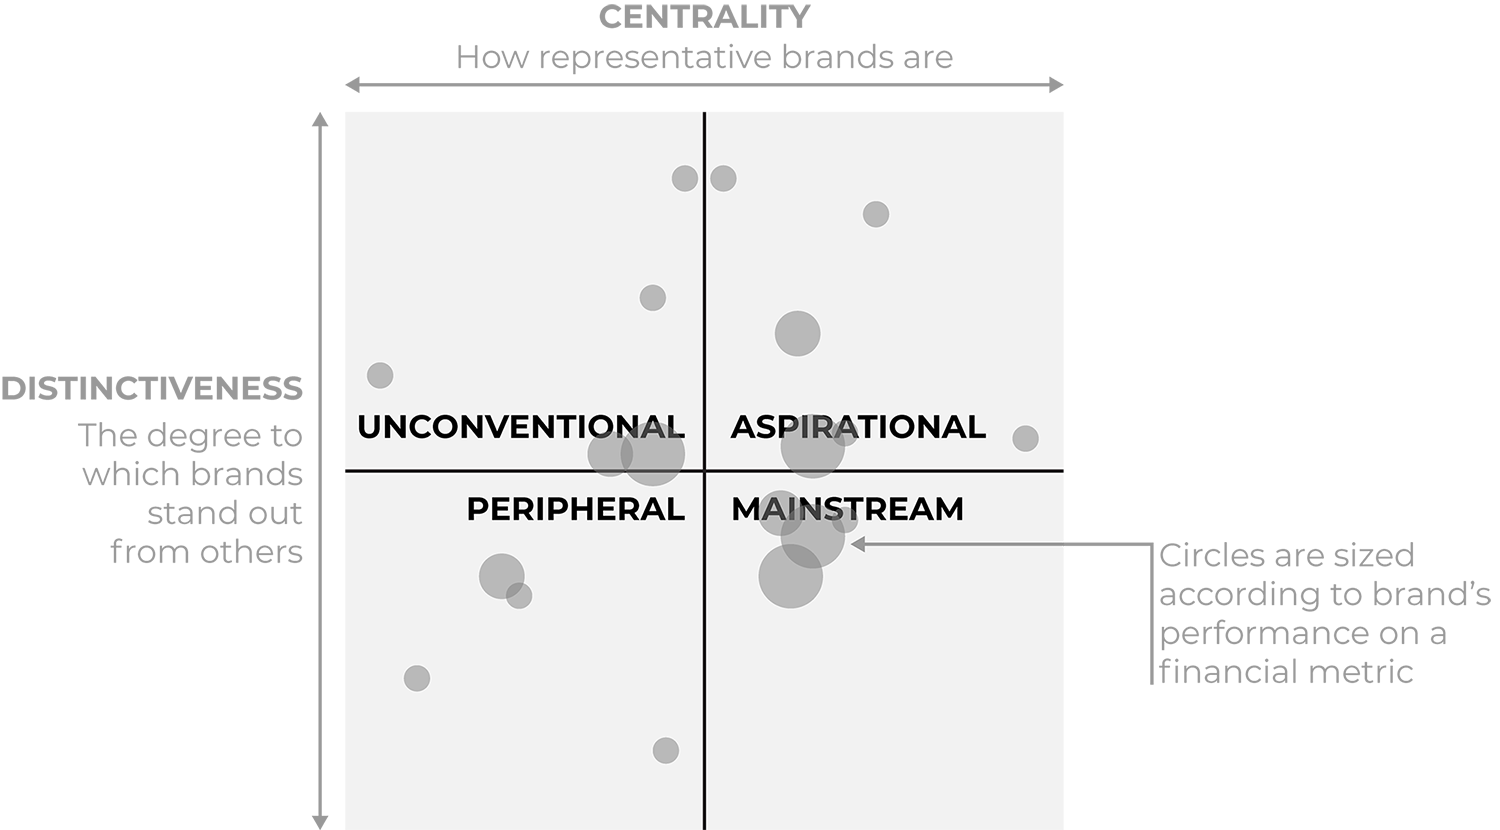 Centrality Distinctiveness map diagram